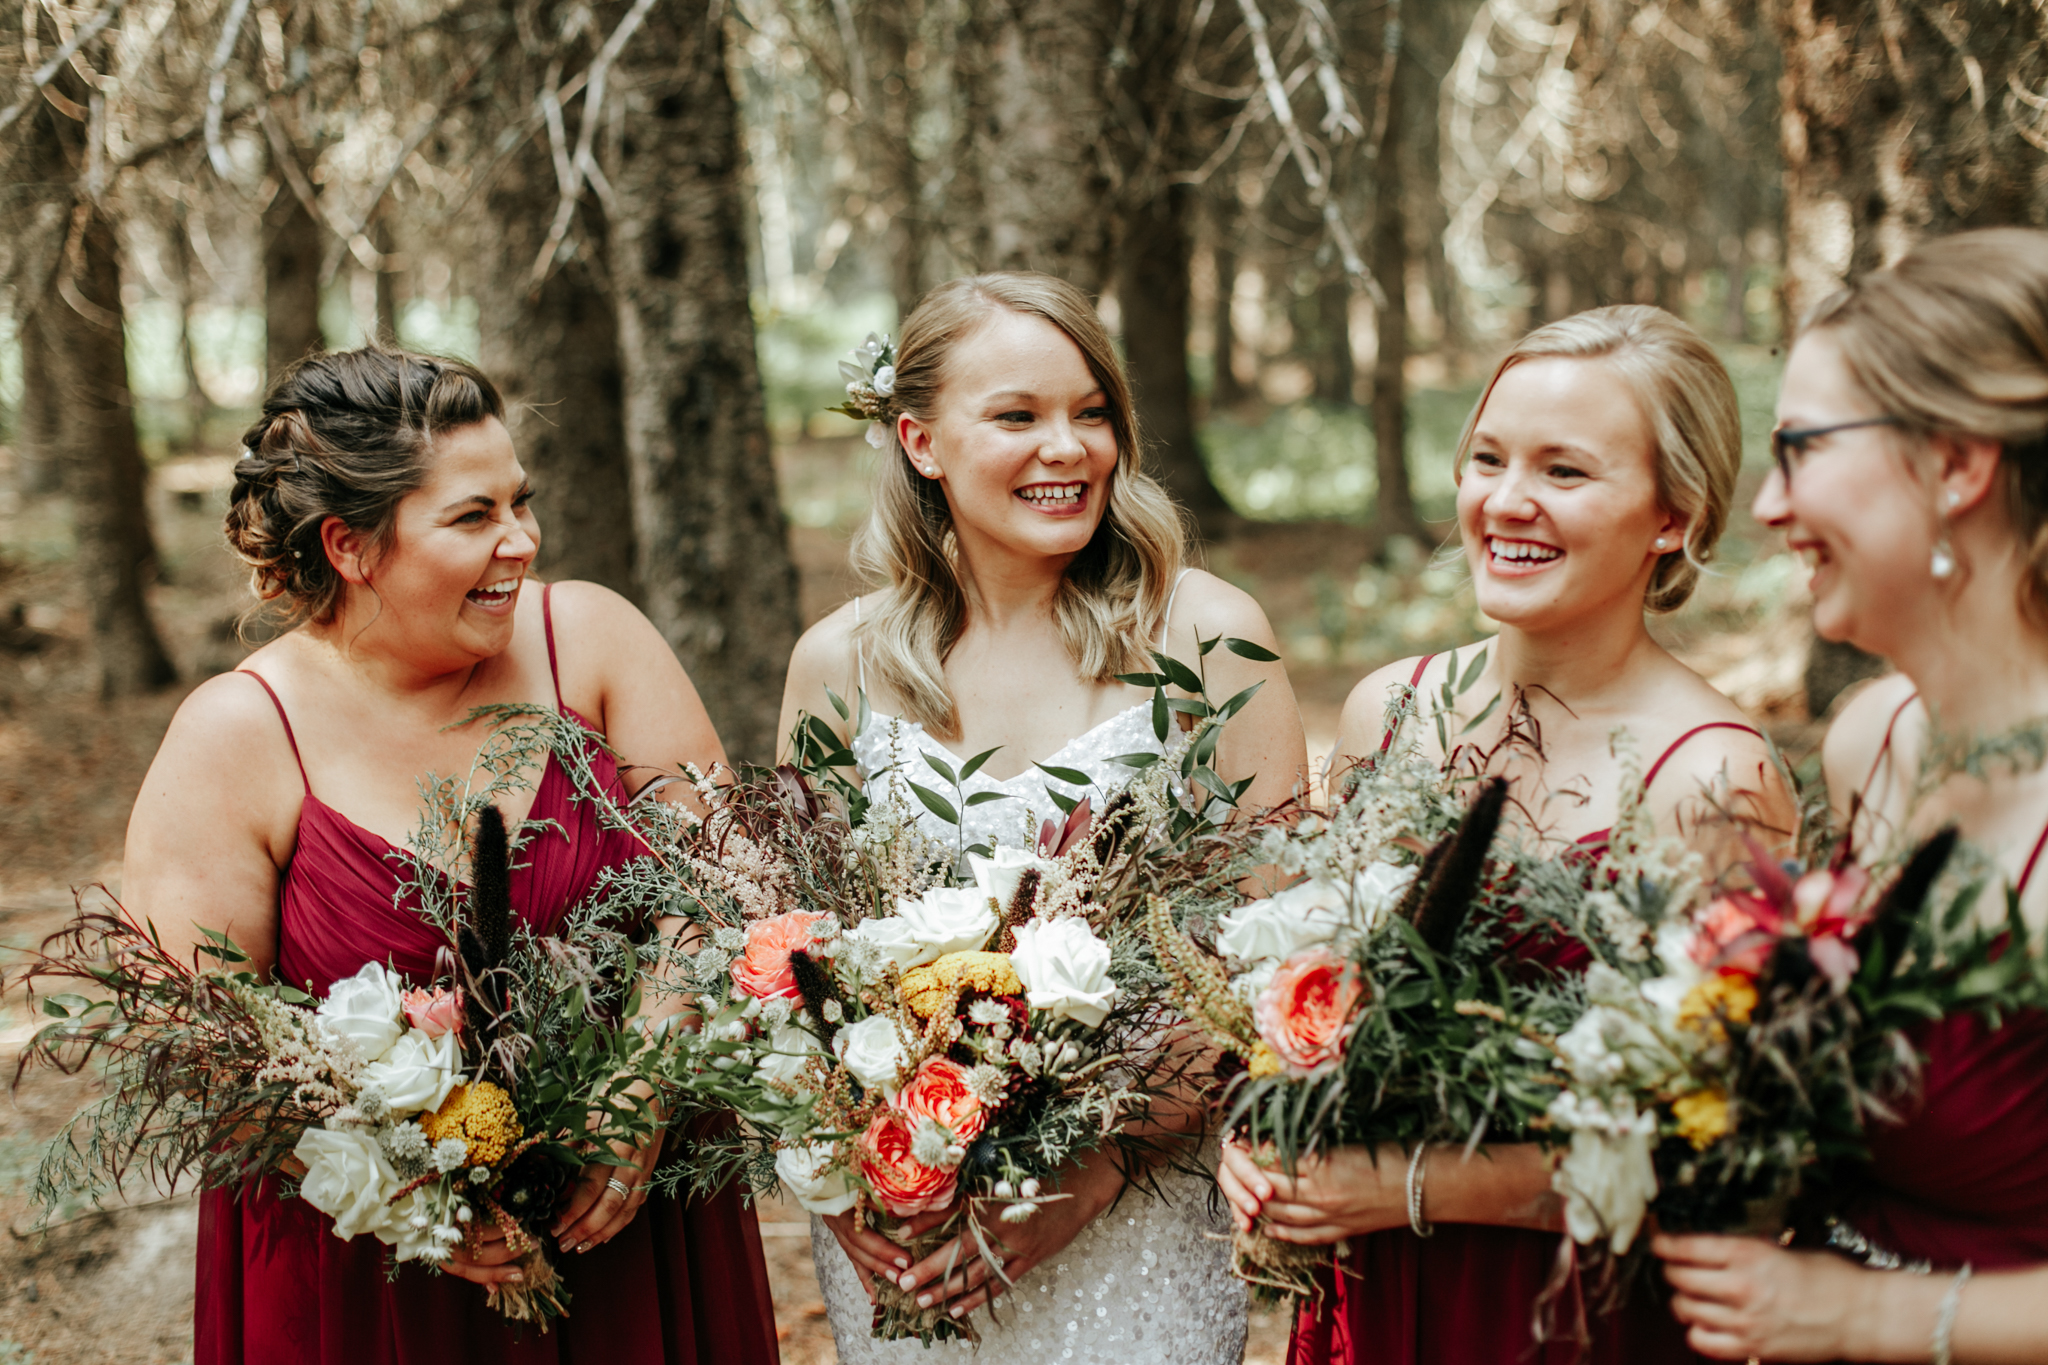 castle-mountain-wedding-photographer-love-and-be-loved-photography-lethbridge-pincher-creek-crowsnest-pass-yannick-rylee-photo-image-picture-106.jpg